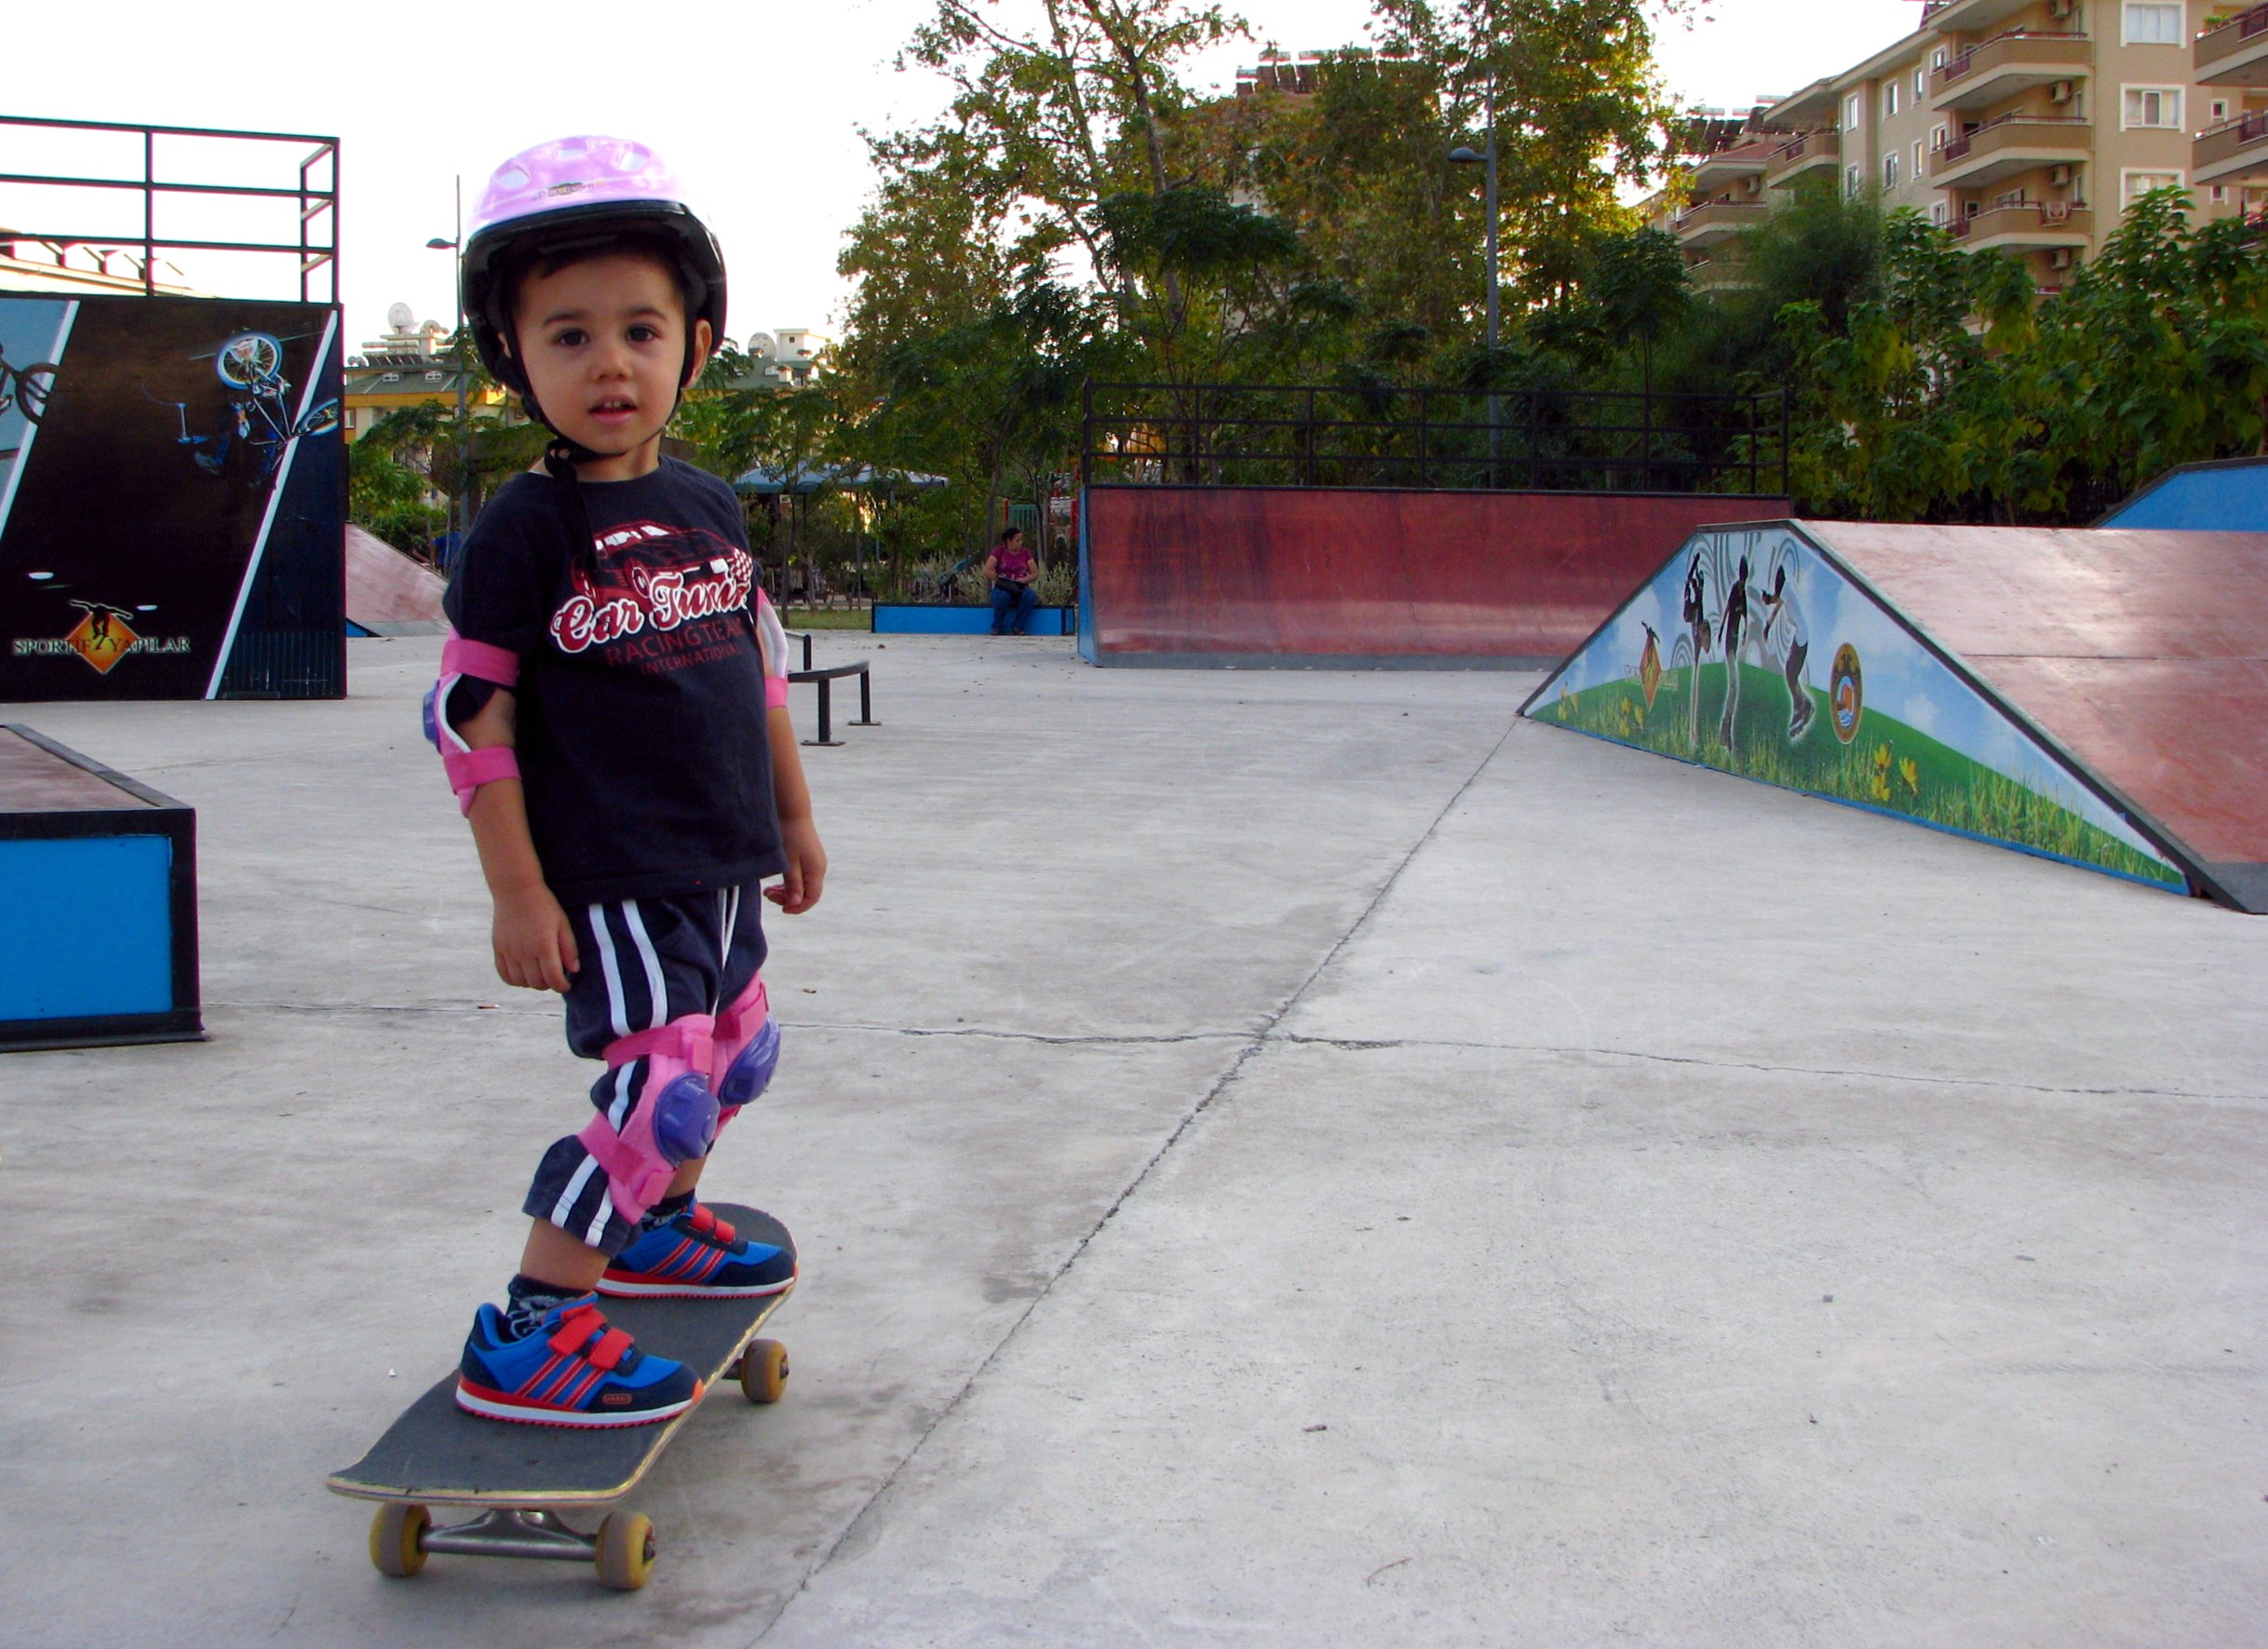 File:Turkish young skater.jpg - Wikimedia Commons